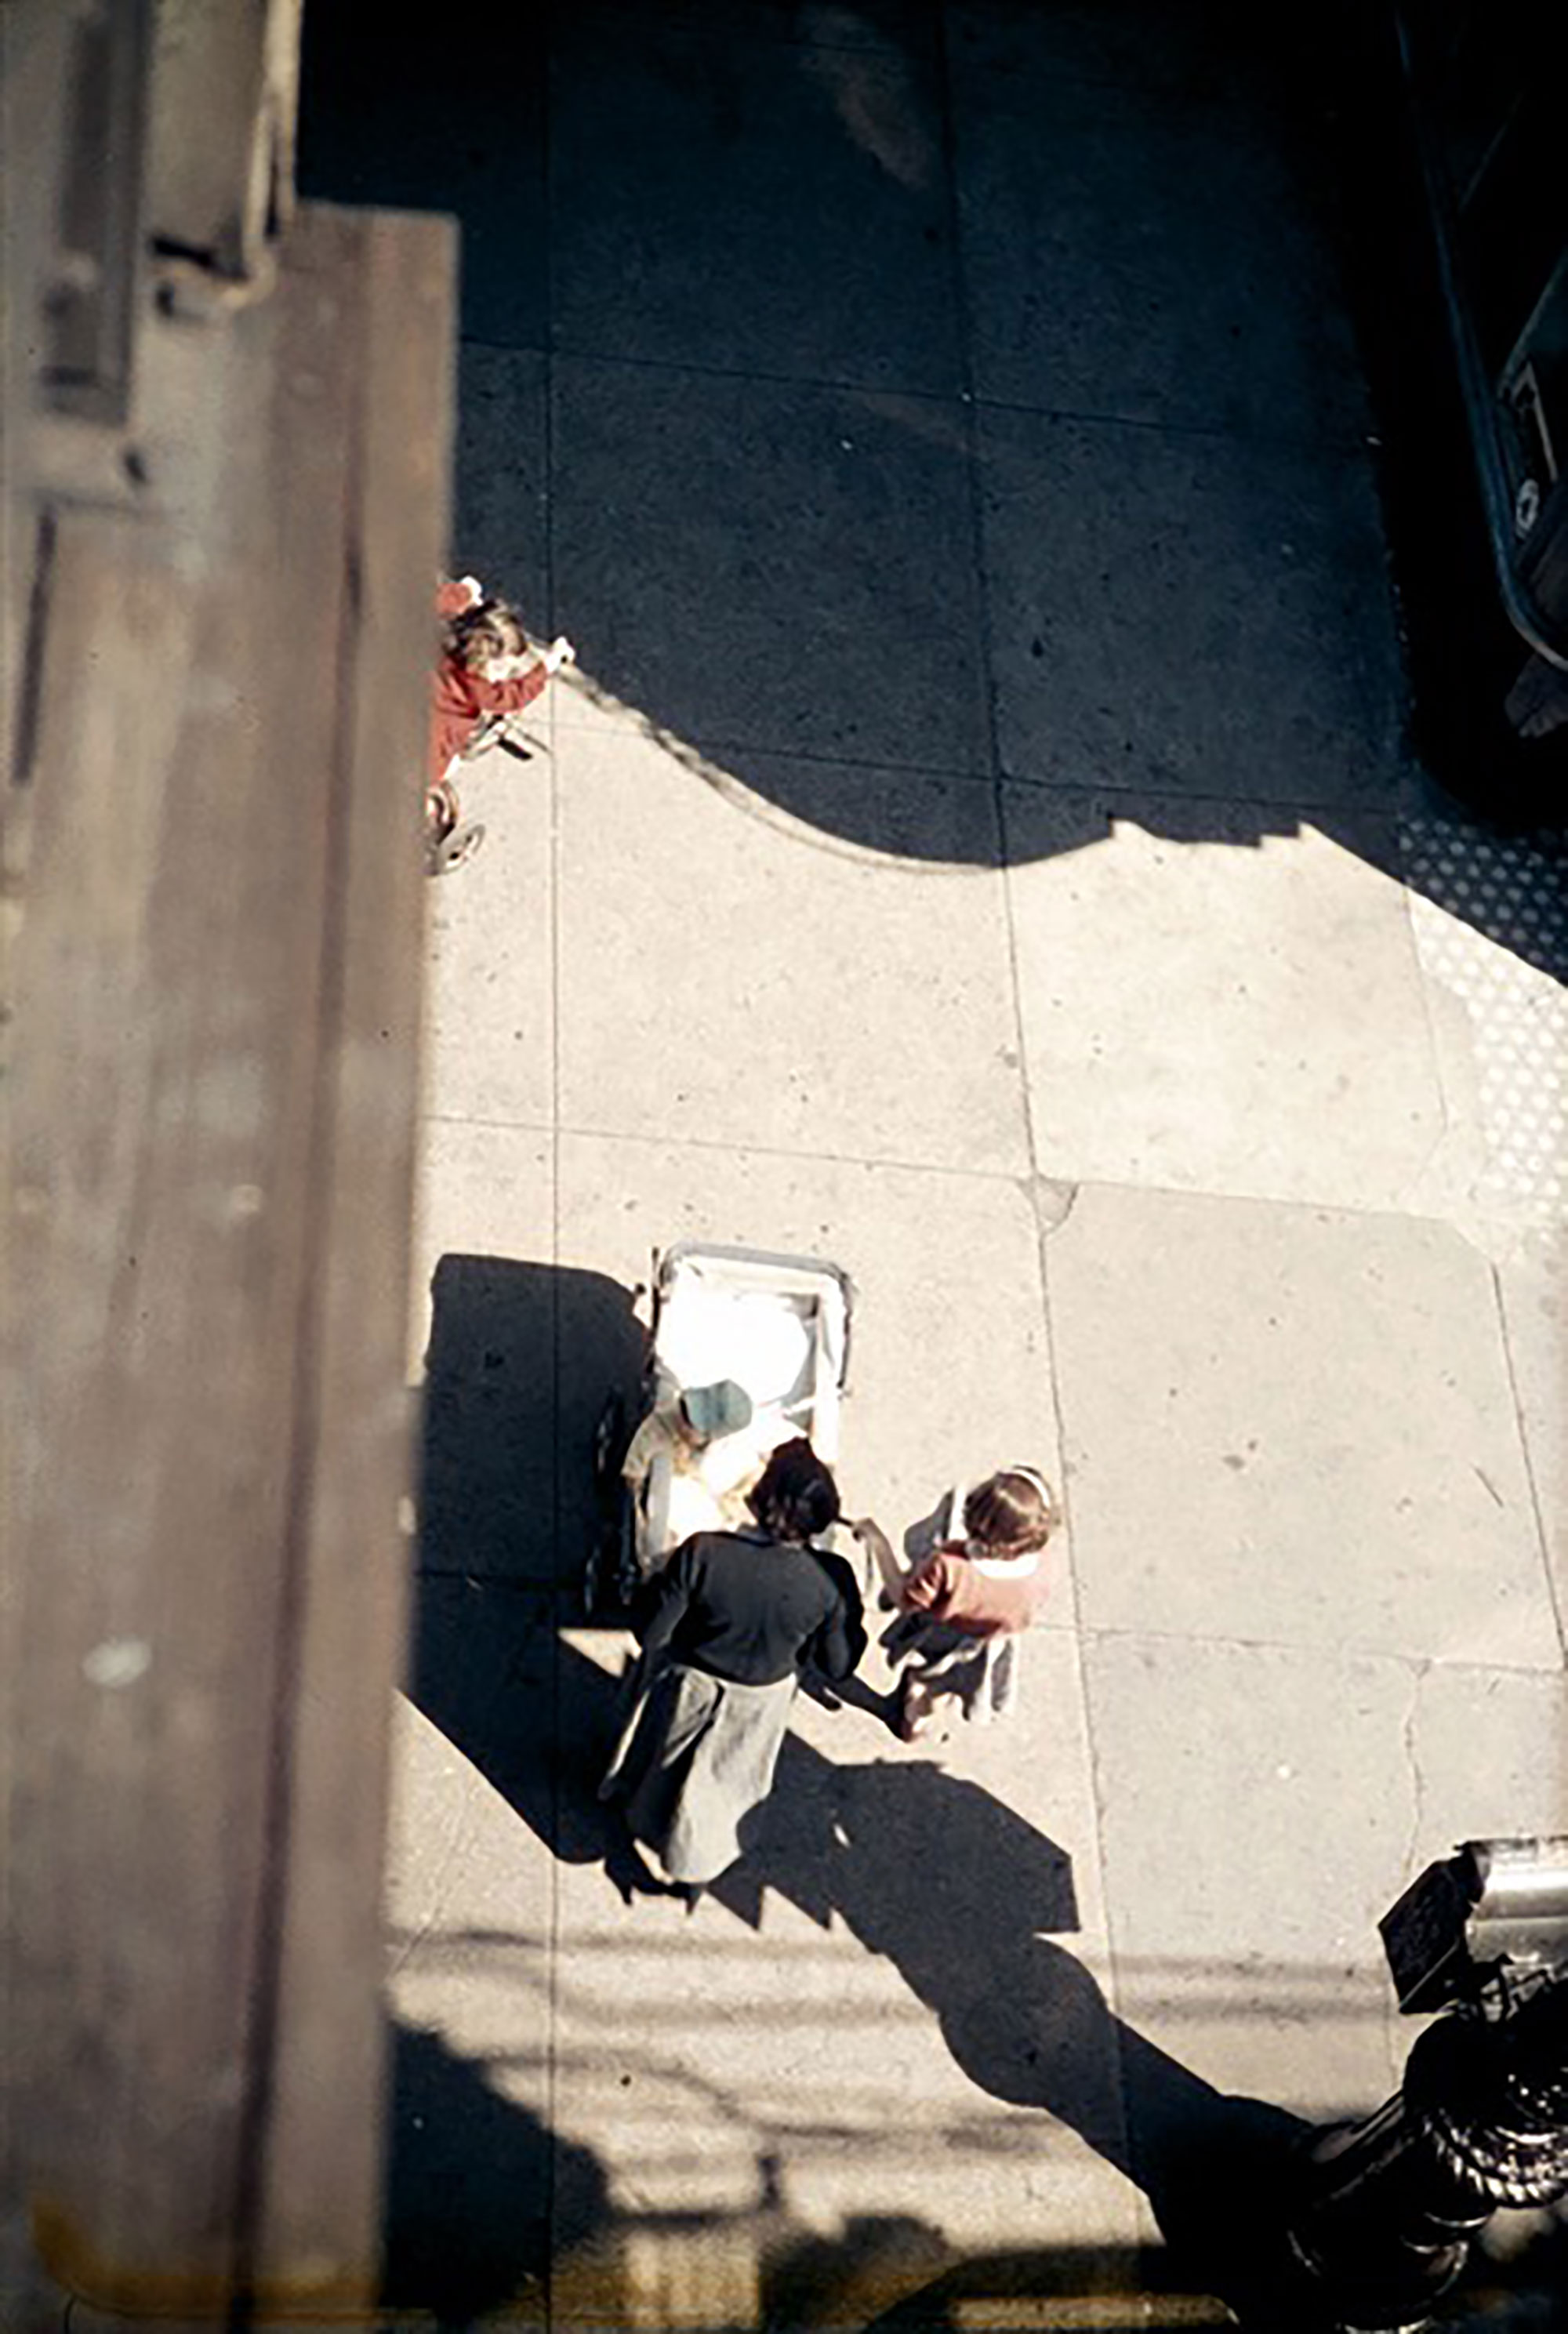 Saul Leiter / From the El,1955 © Saul Leiter